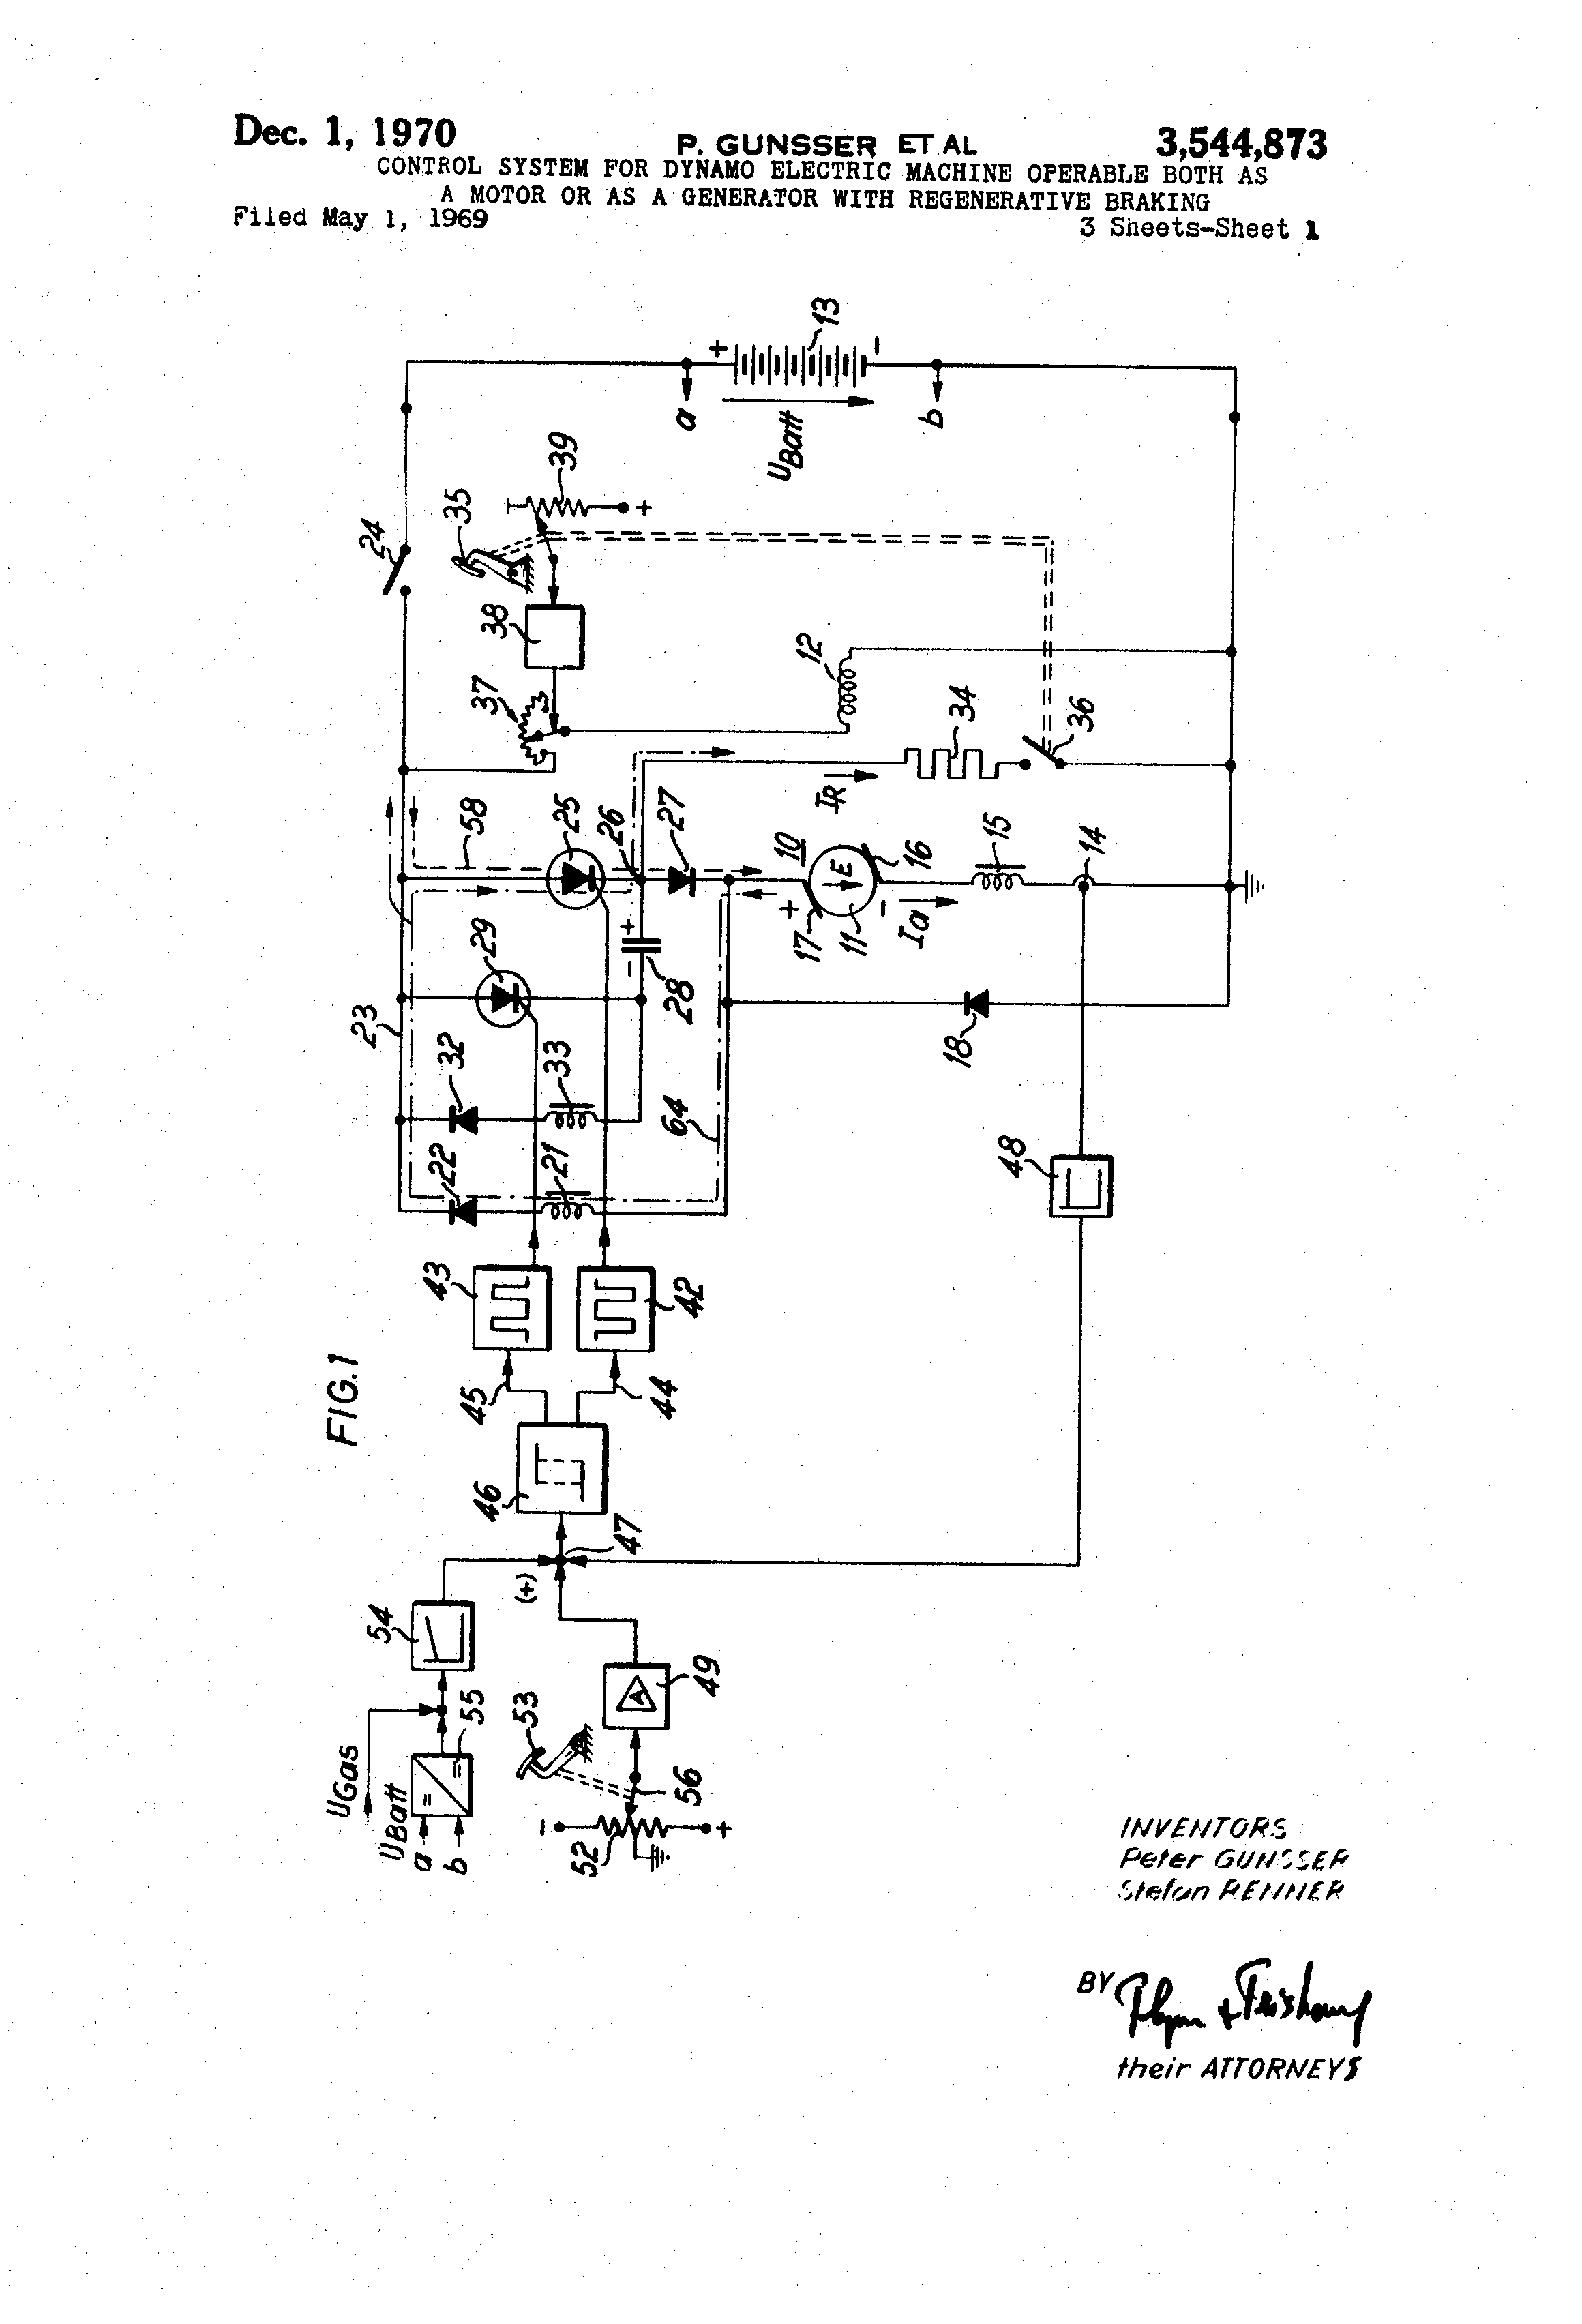 Chopper Circuit For Dynamic Braking In An Electric Power Conversion